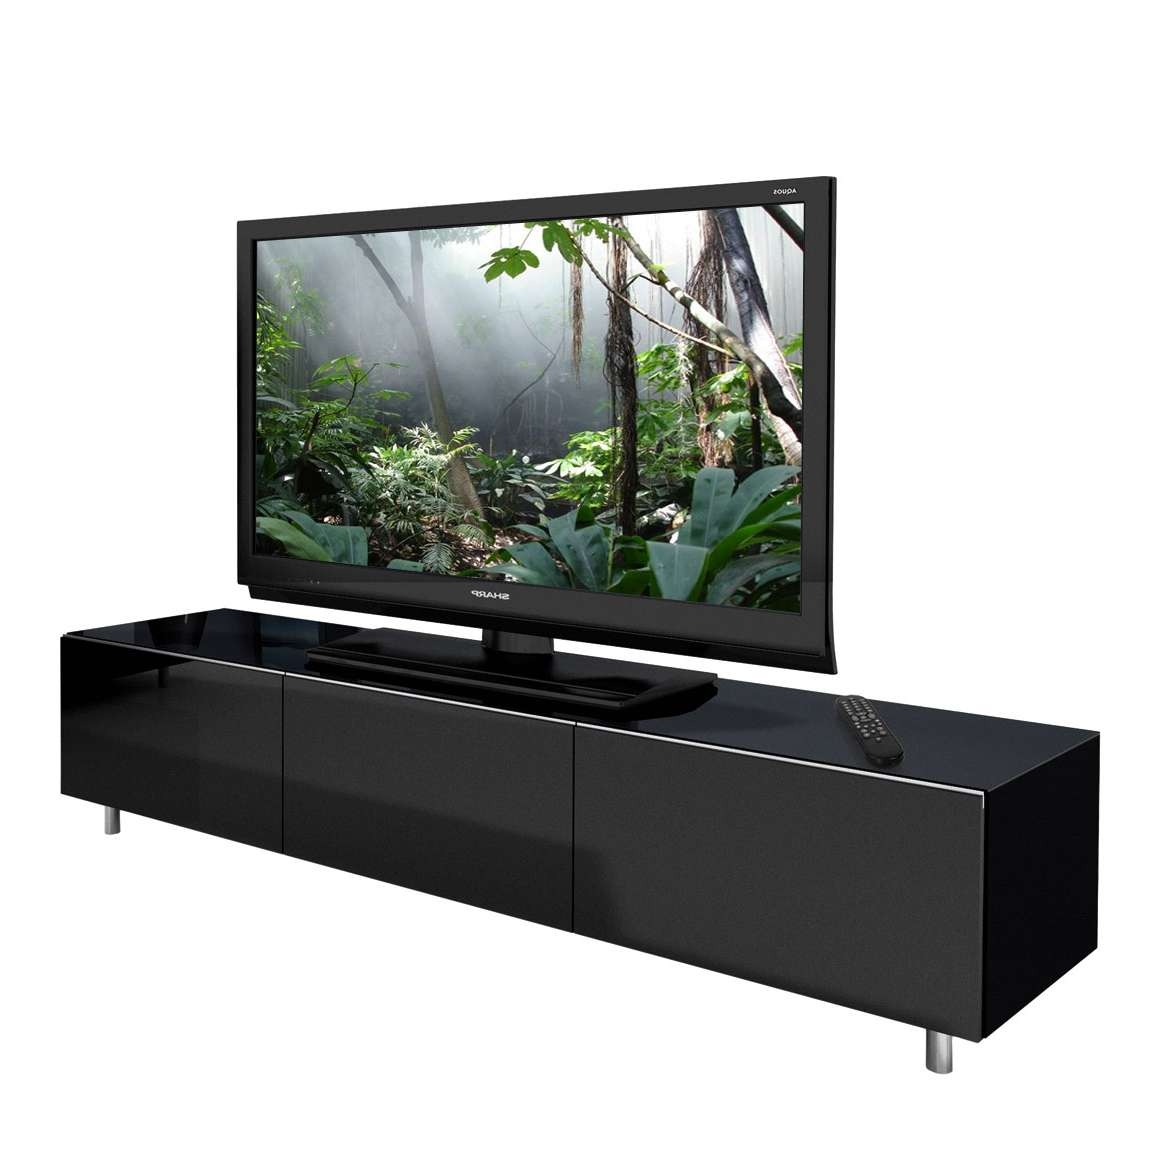 Just Racks Jrl1650 Gloss Black Tv Cabinet – Black Tv Stands Within Black Gloss Tv Cabinets (View 8 of 20)